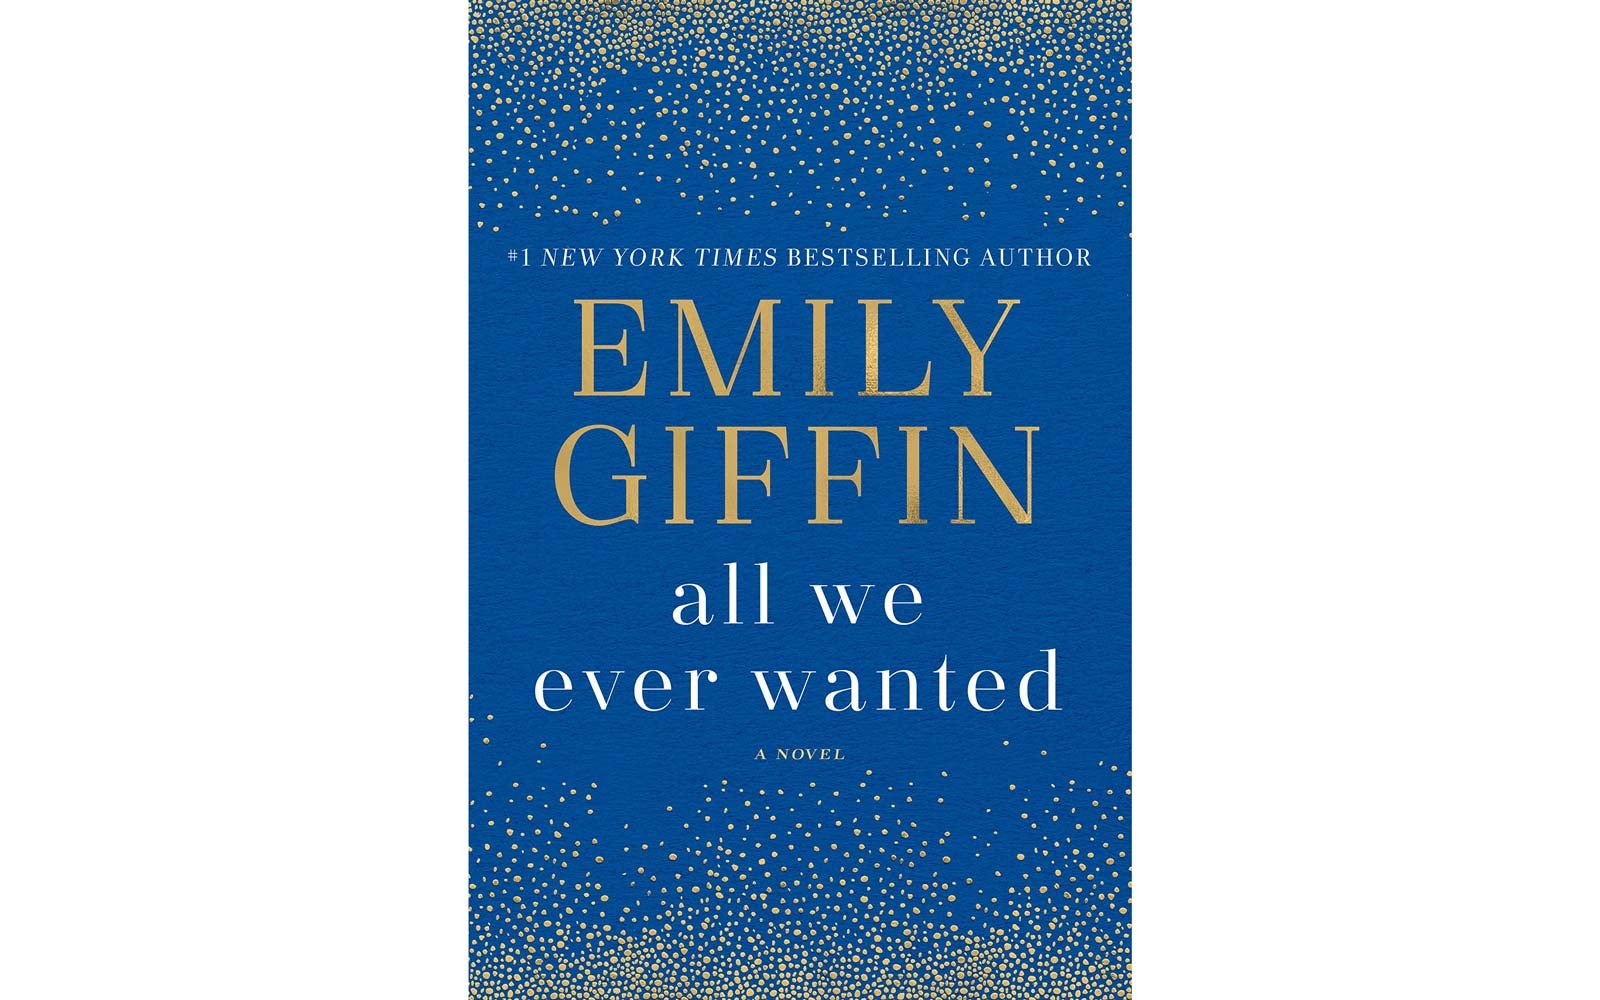 All We Ever Wanted, by Emily Giffin